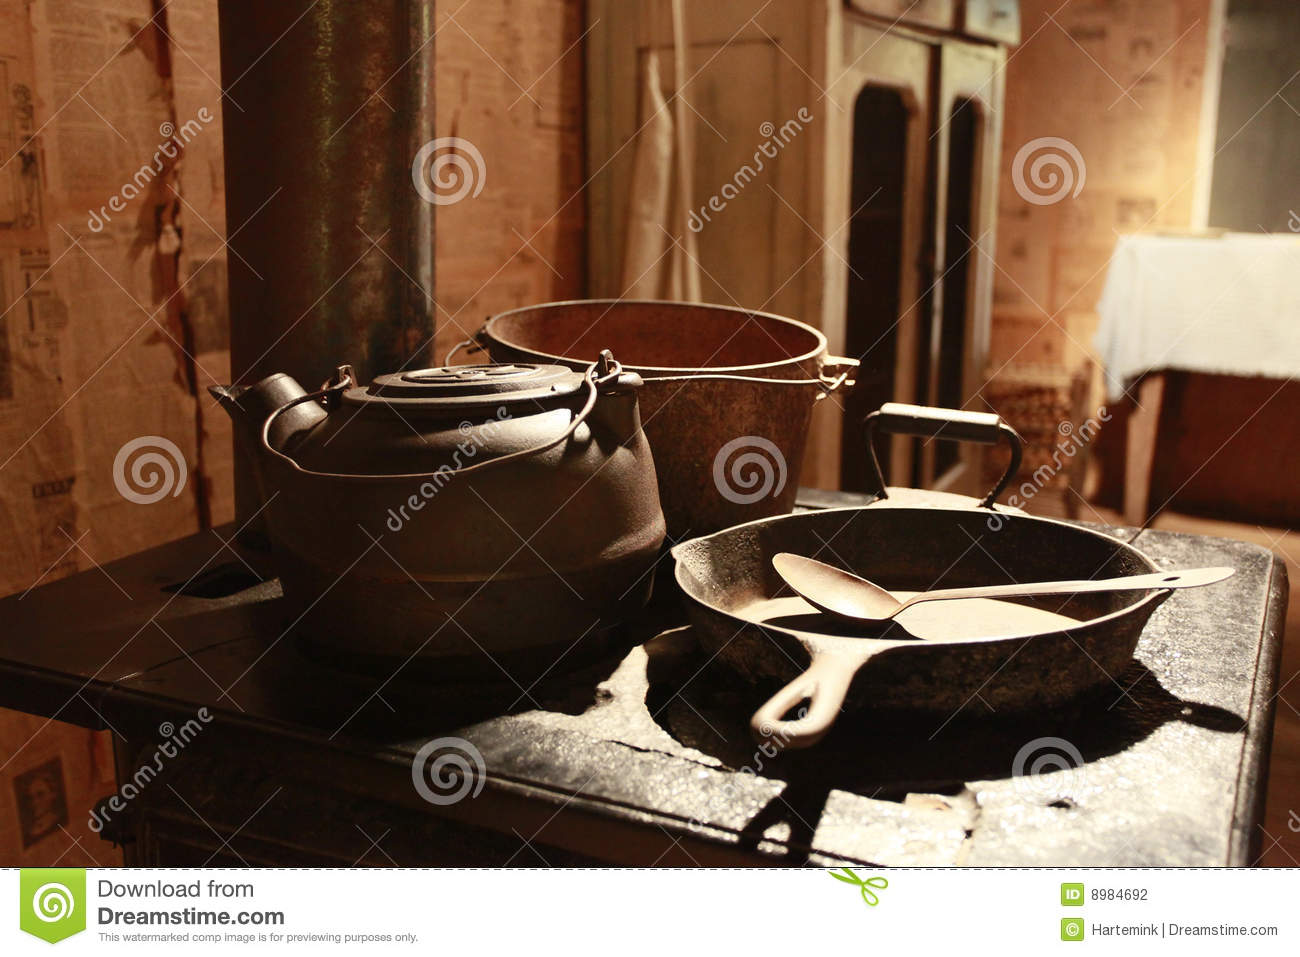 Pots and pans on stove - chat de baito